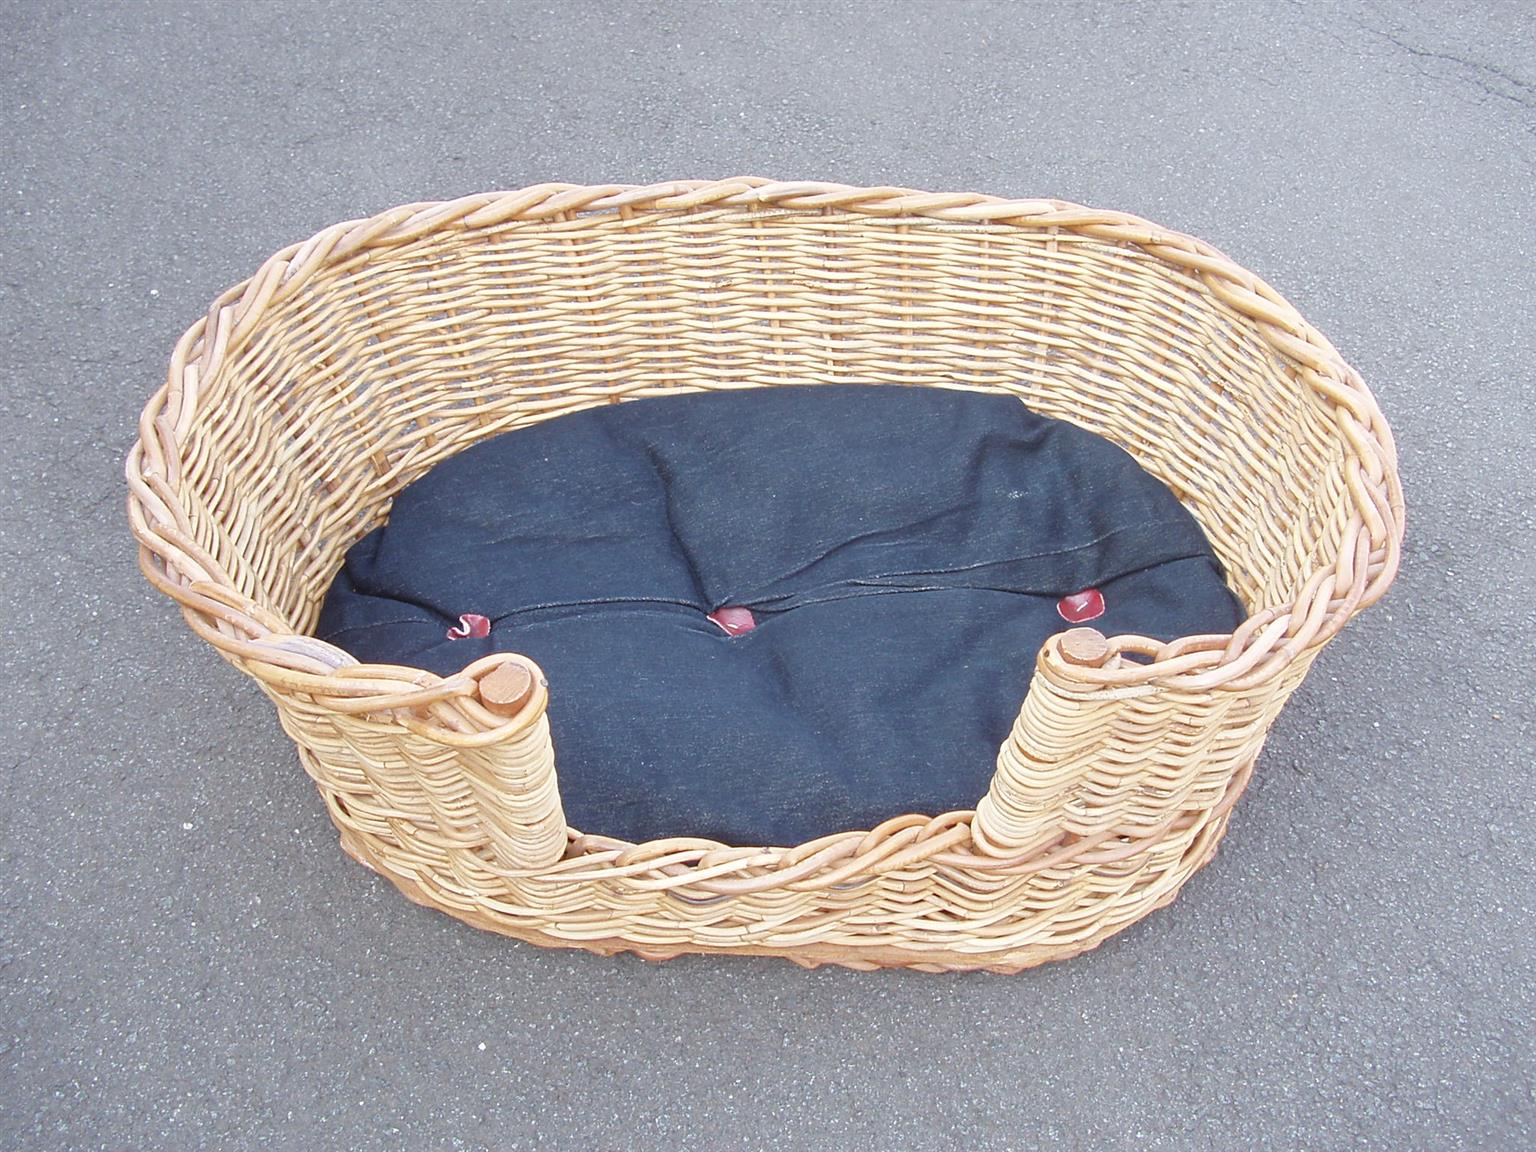 Dog Cane Basket - with Cushion - in excellent condition